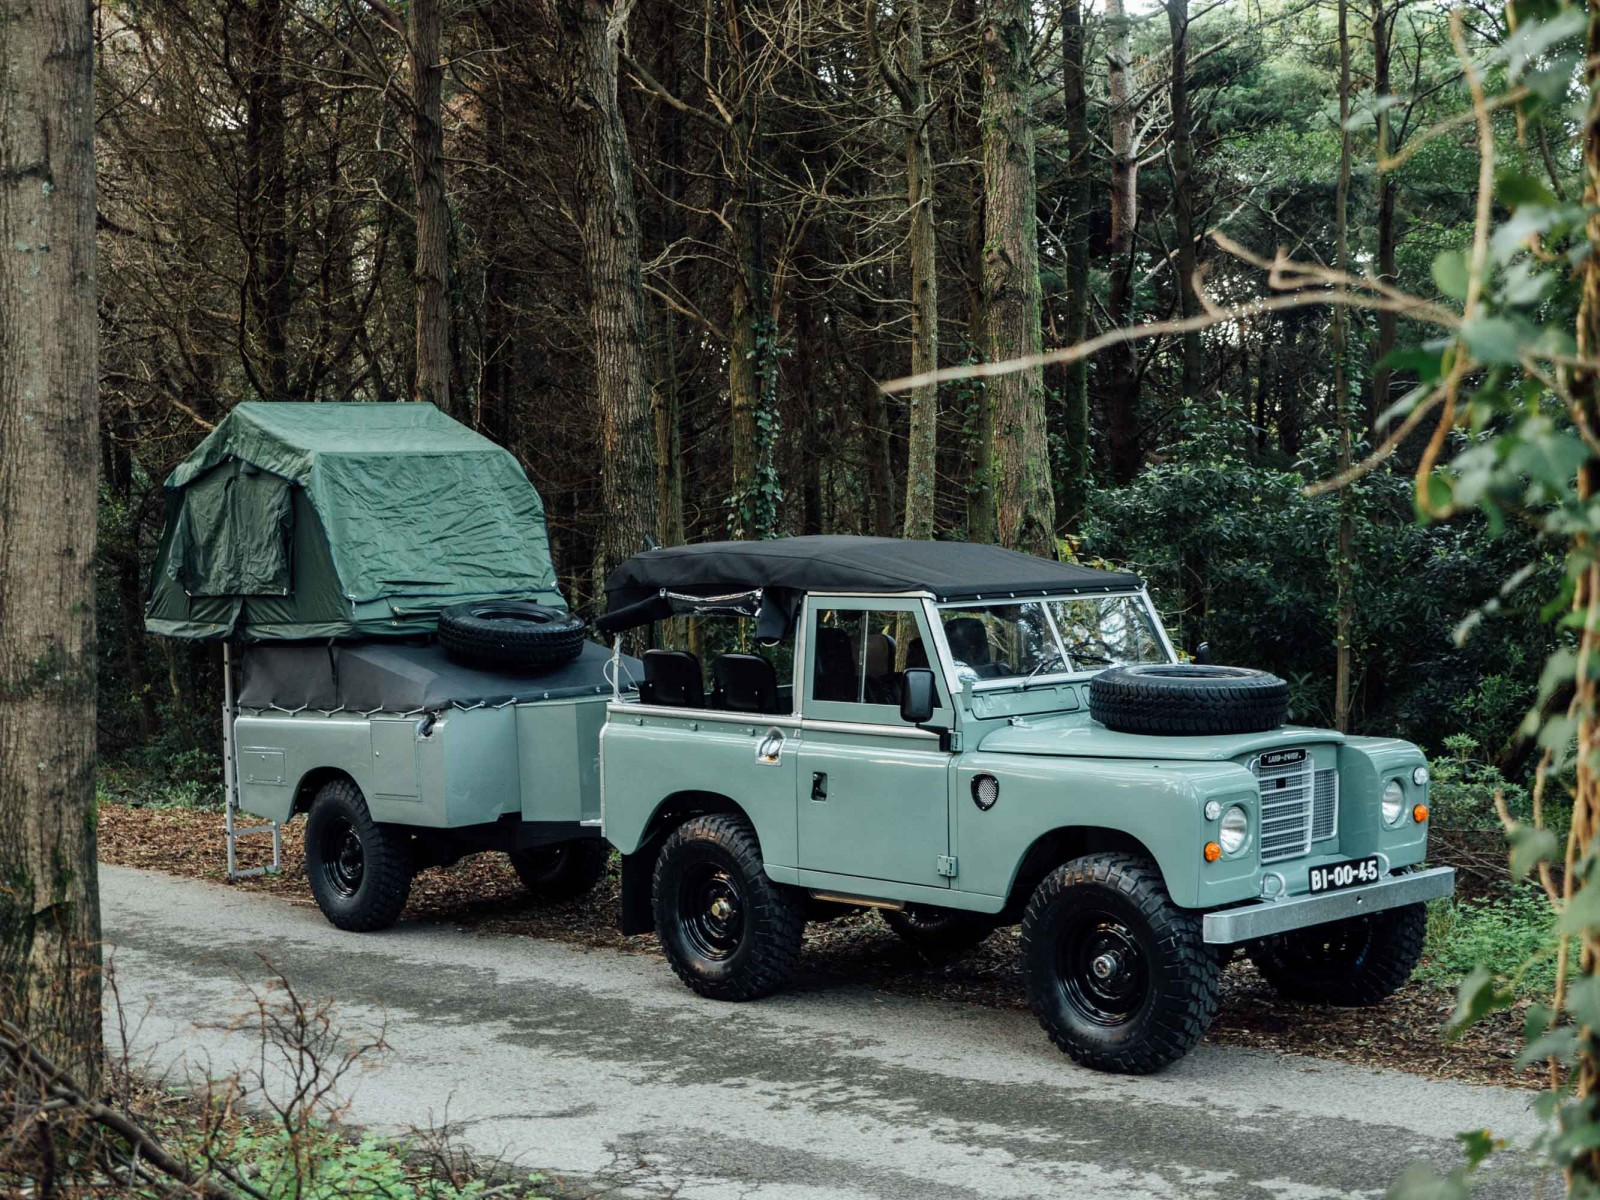 Essential Reading A Brief History Of The Land Rover Series 3 Driving Light Wiring Australian Owners Ability To Extensively Customize Was One Its Great Attributes And Helped Keep It Attractive In Competition With Arch Rival